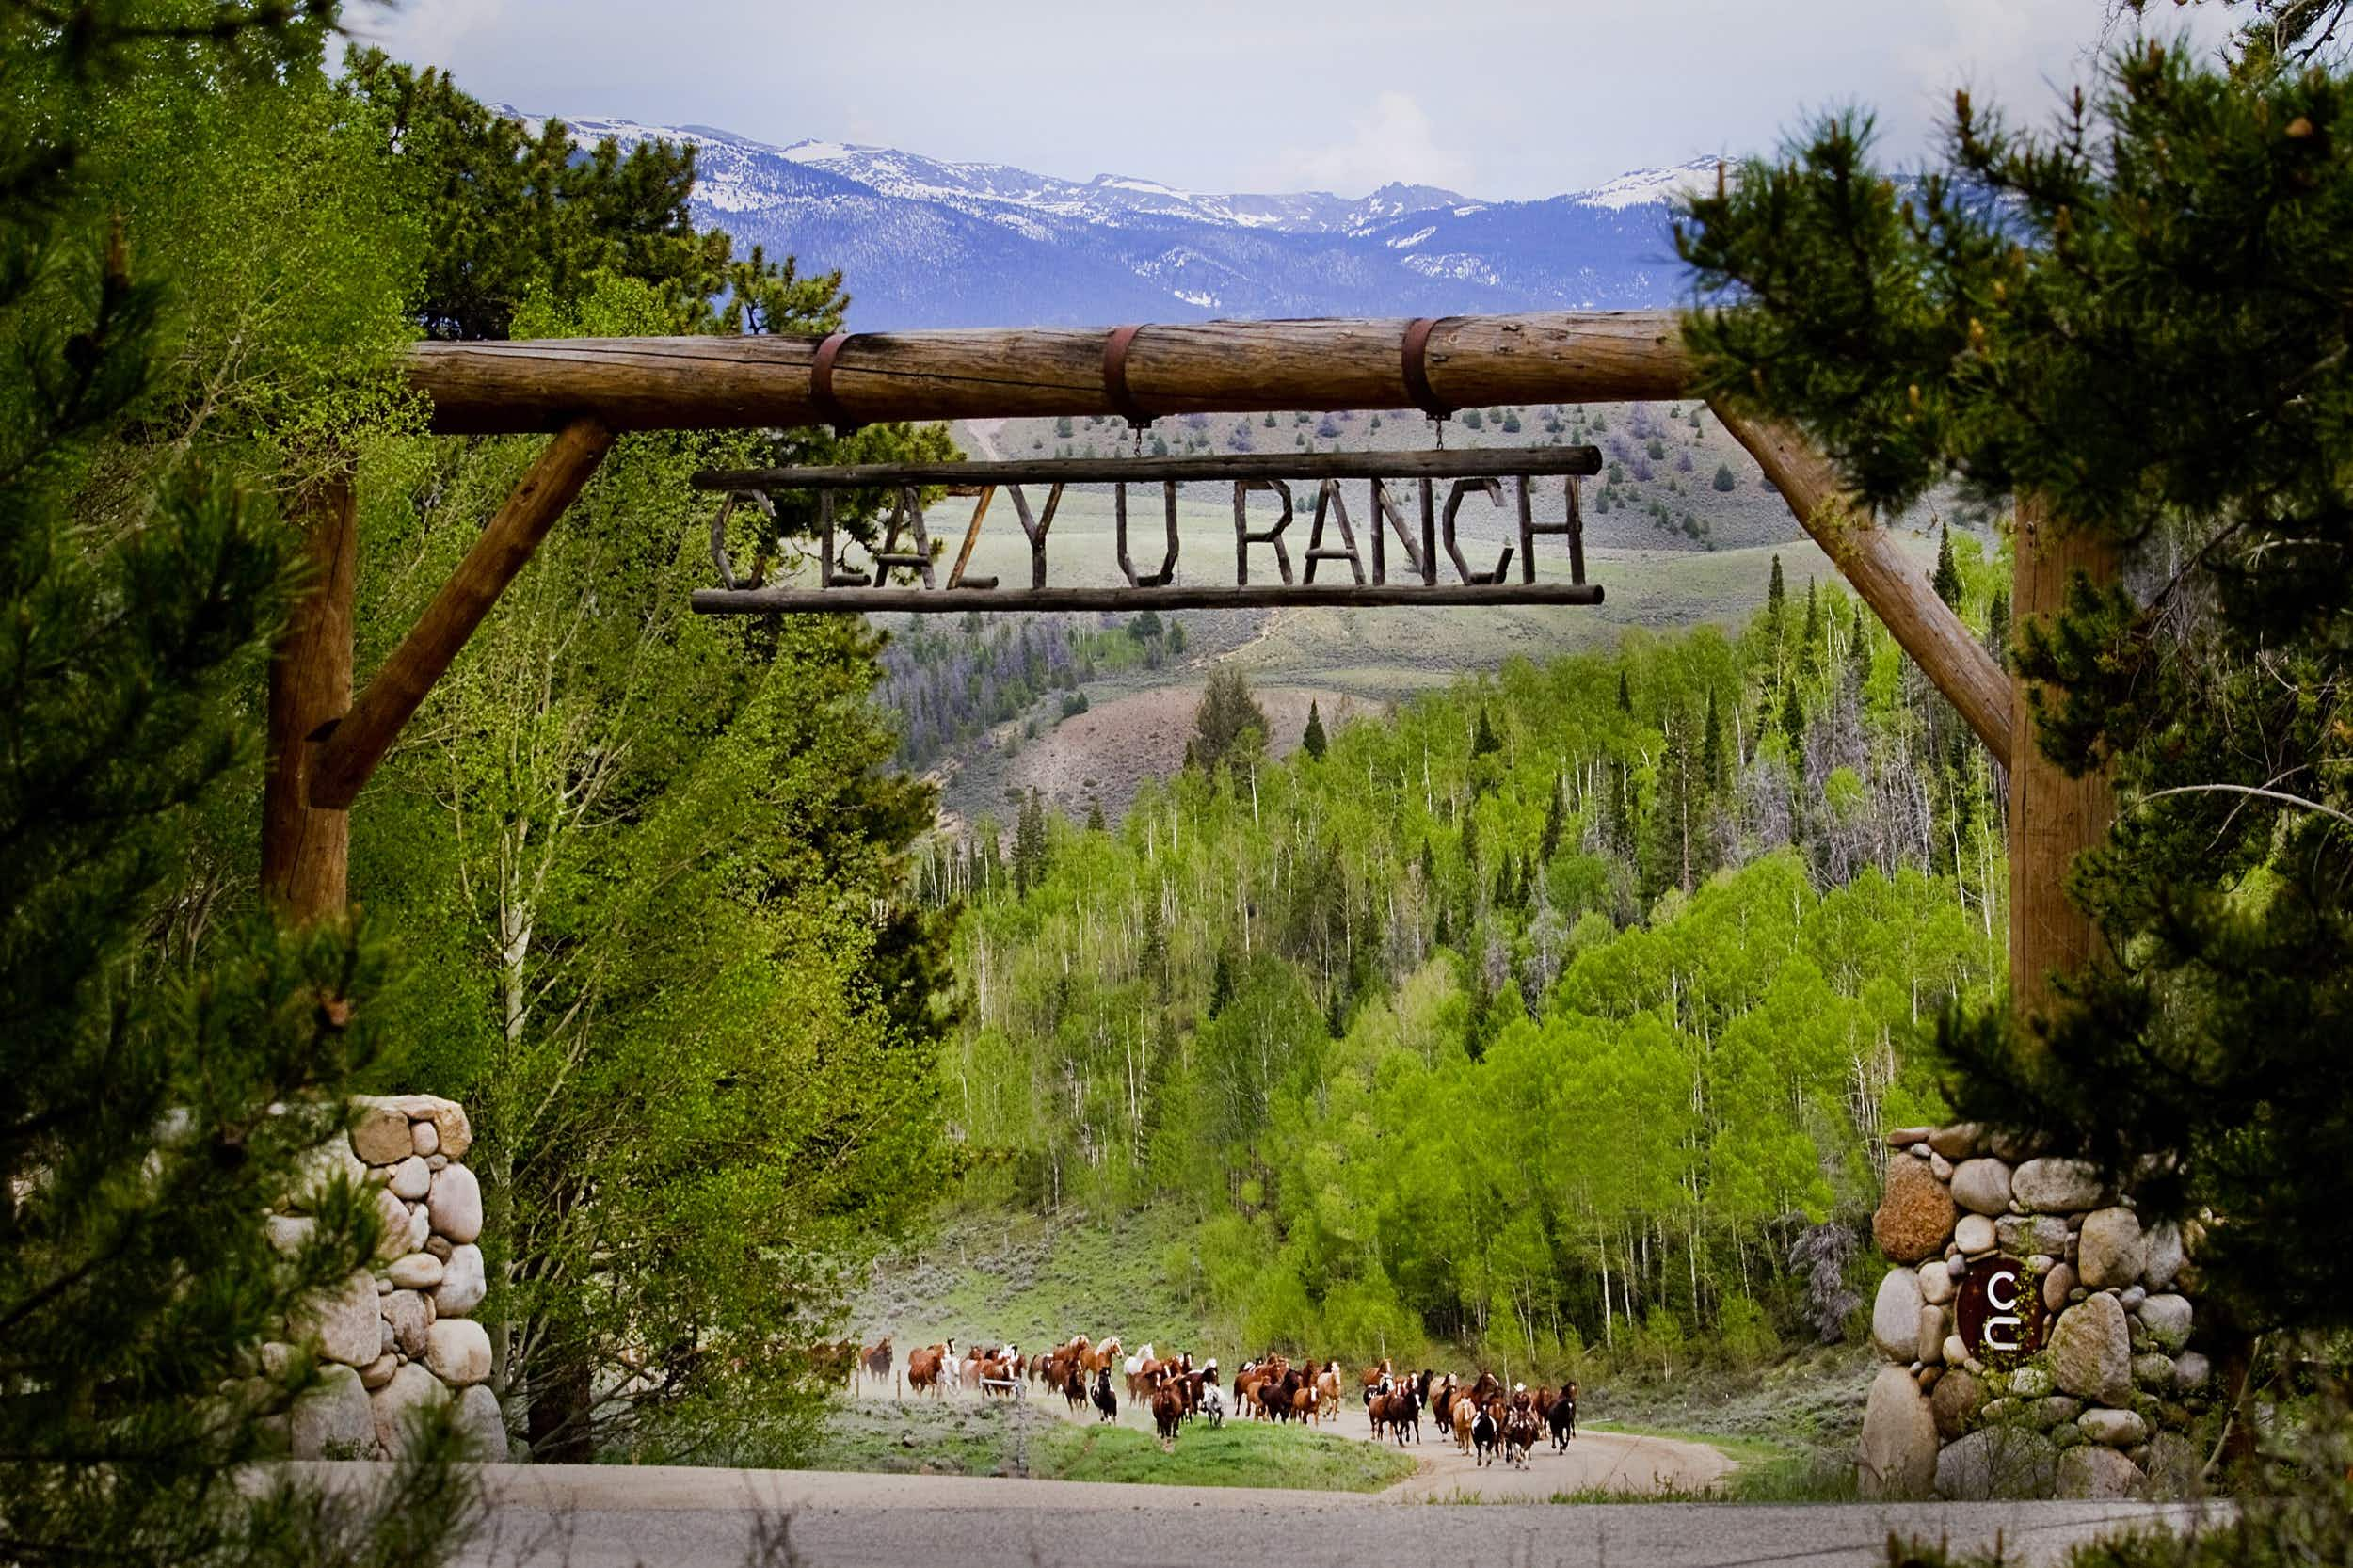 Walking through the C Lazy U's front gate is like stepping back in time to the Wild West © C Lazy U Ranch